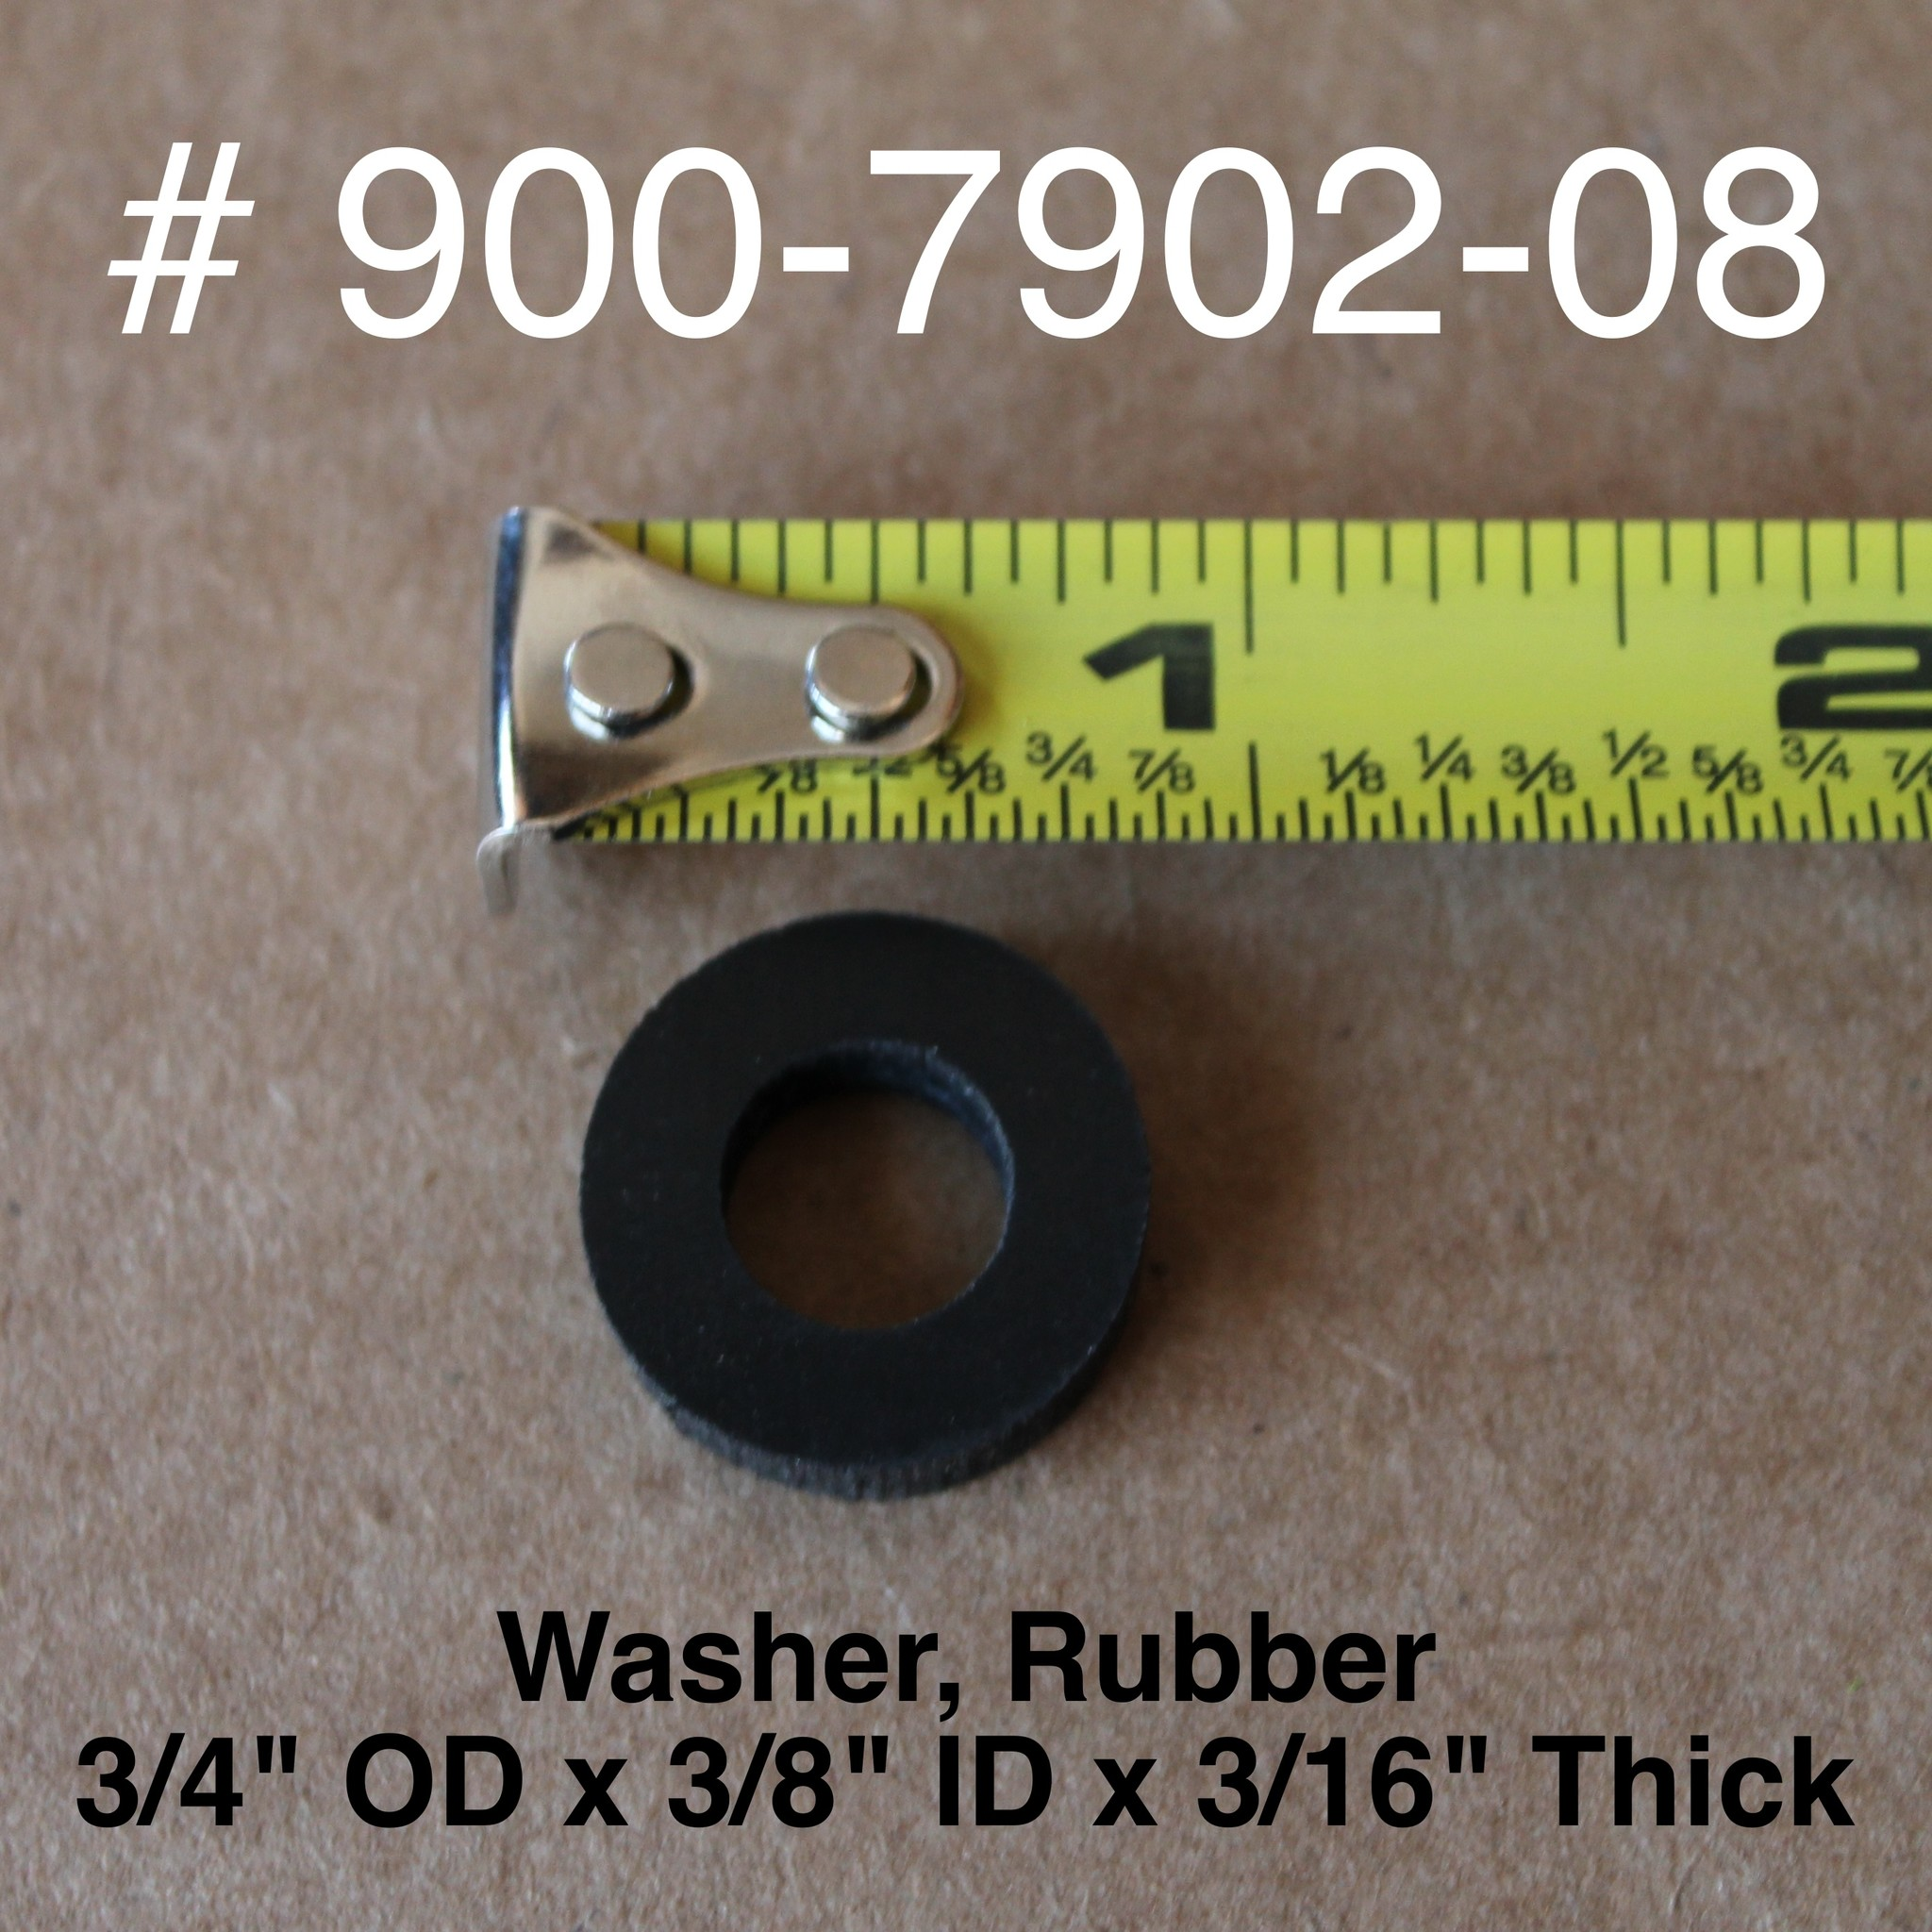 """Bandit® Parts RUBBER WASHER FOR LEXAN COVER, 3/4"""" OD x 3/8"""" ID x 3/16"""" Thick, 900-7902-08"""